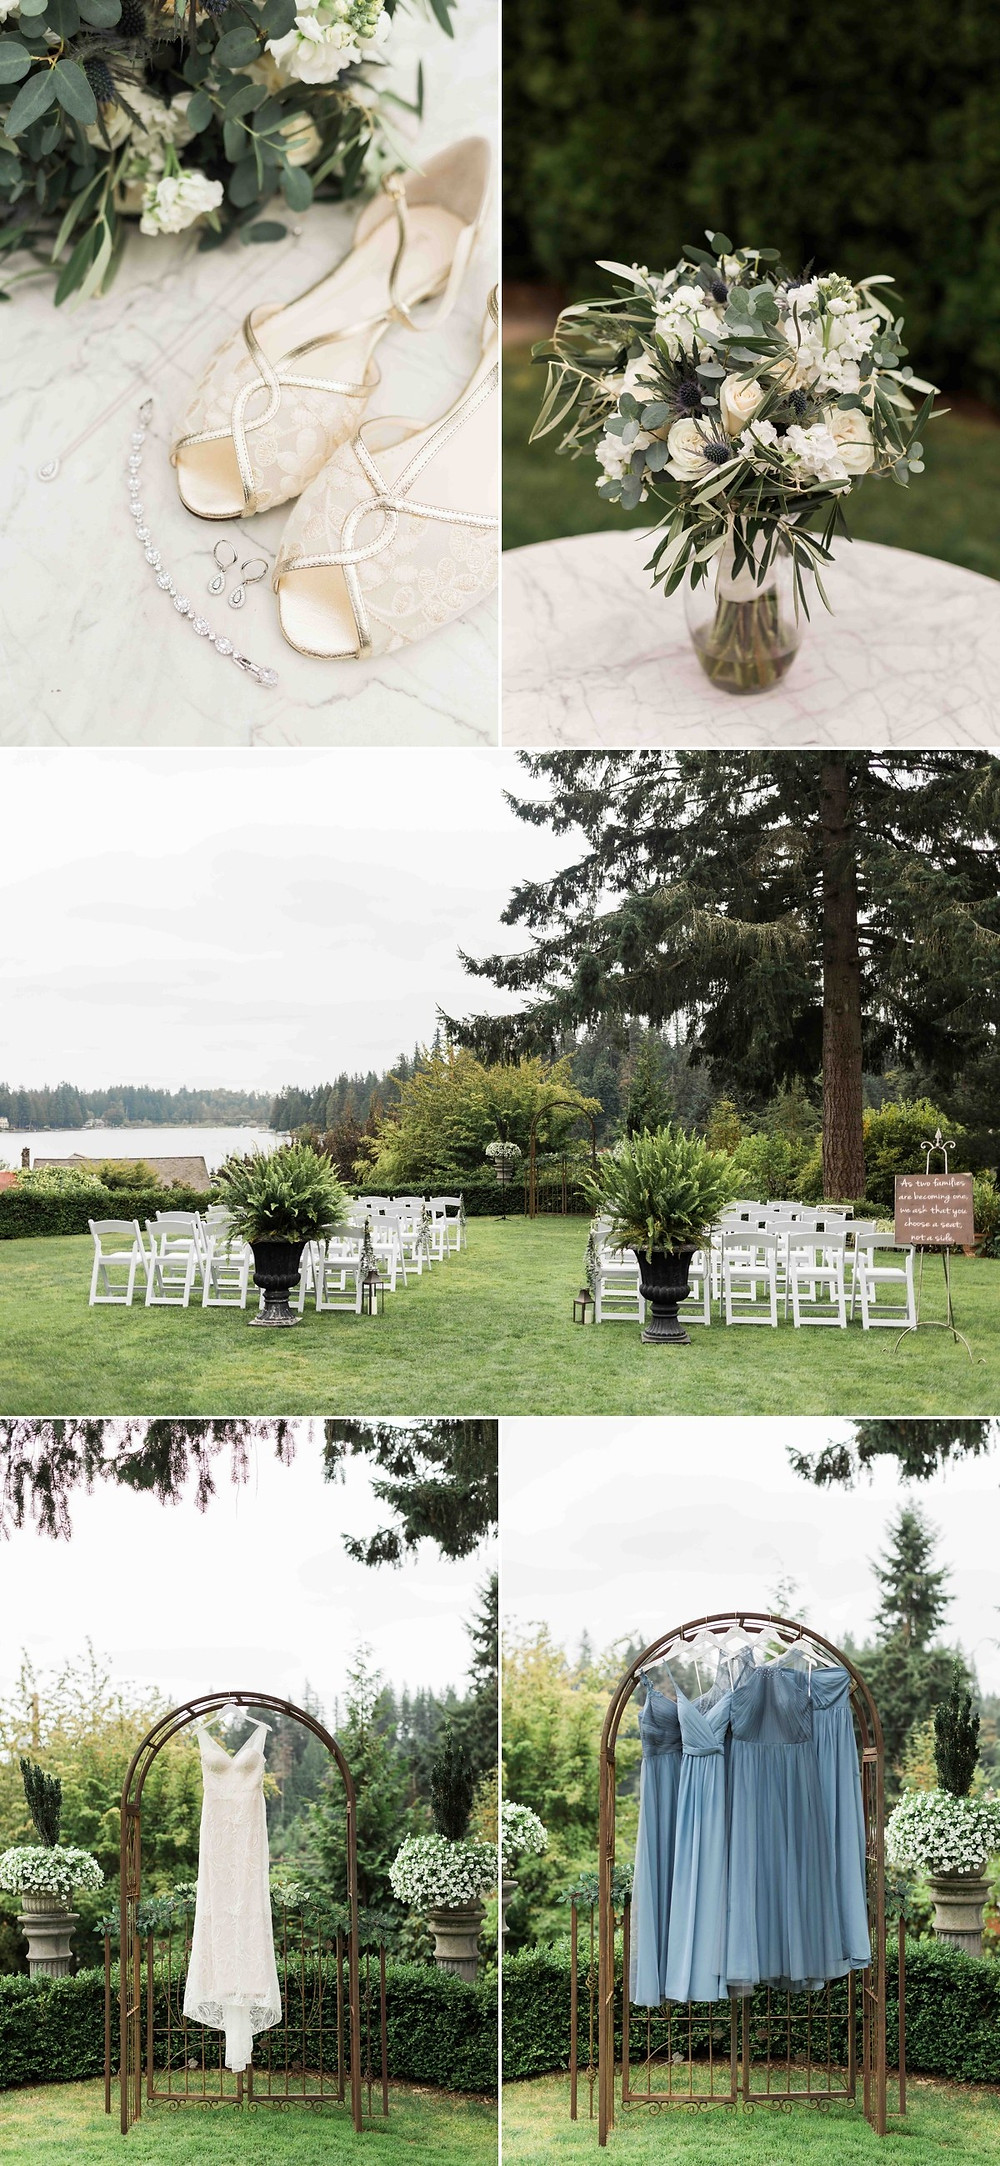 Bridal details and a photo of the ceremony area from a wedding at Green Gates at Flowing Lake, a wedding venue in Snohomish near Seattle, WA. | My Snohomish Wedding | Snohomish Wedding Planning